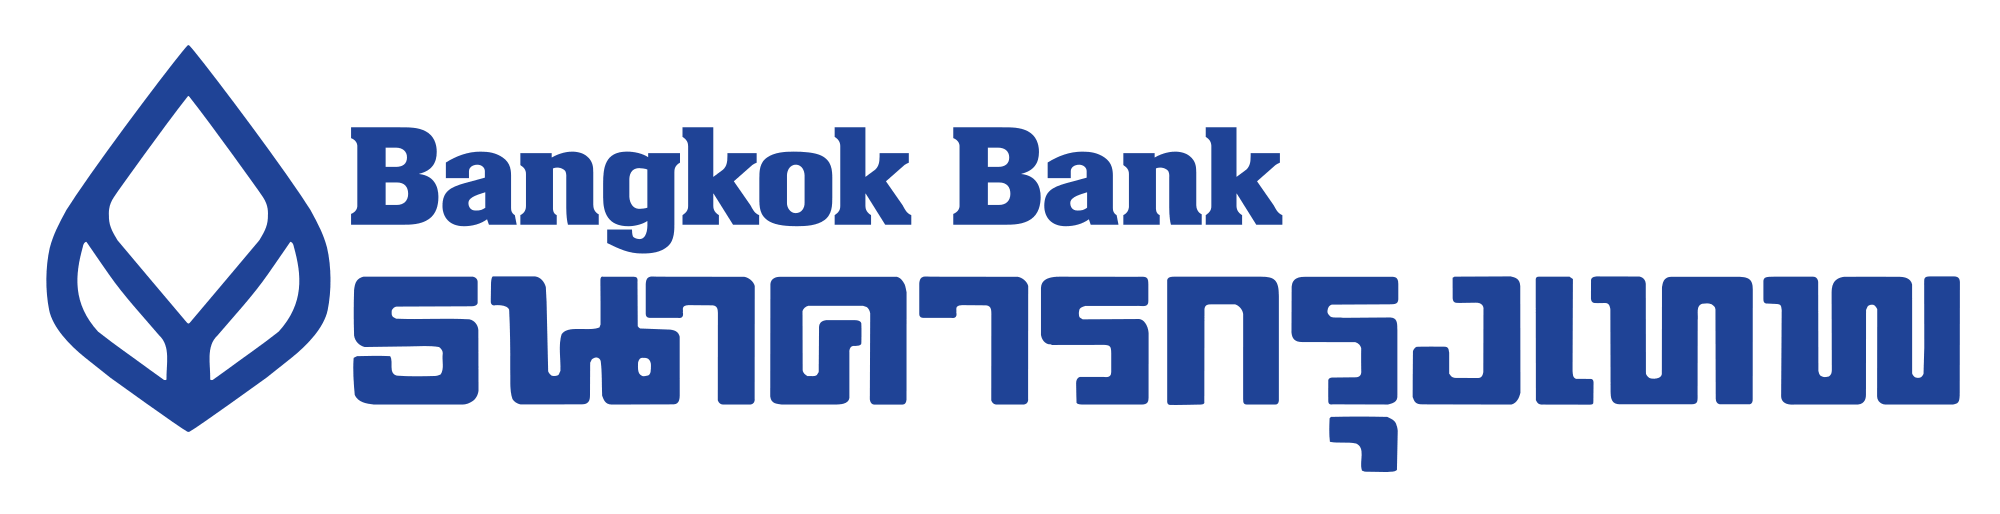 Bangkok Bank Logo